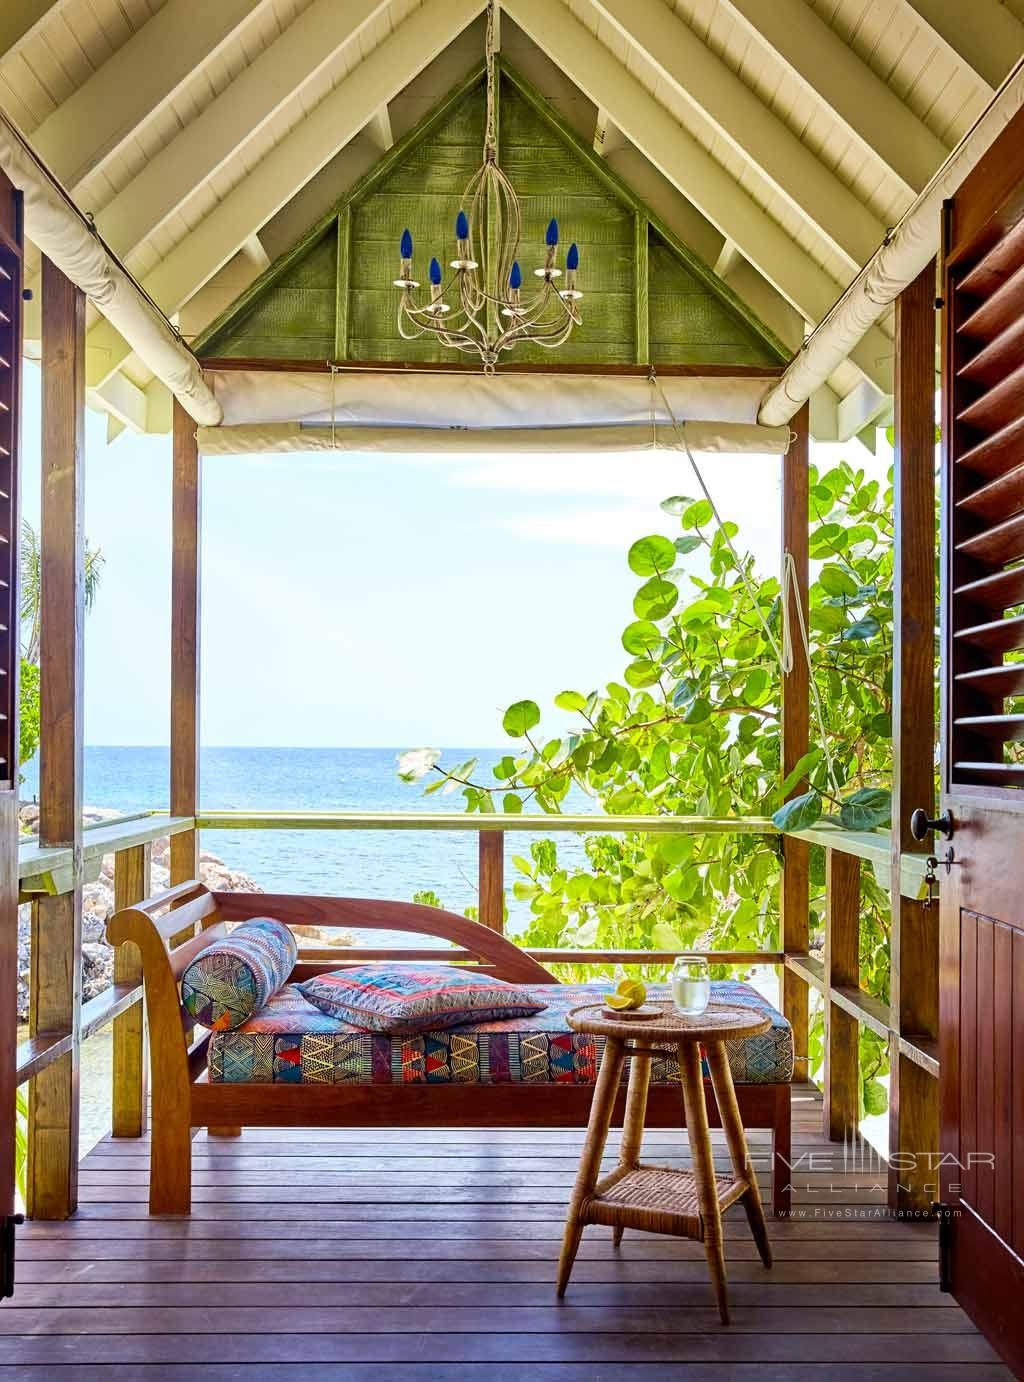 Beach Hut at GoldenEye Hotel and Resort, St. Mary, Jamaica